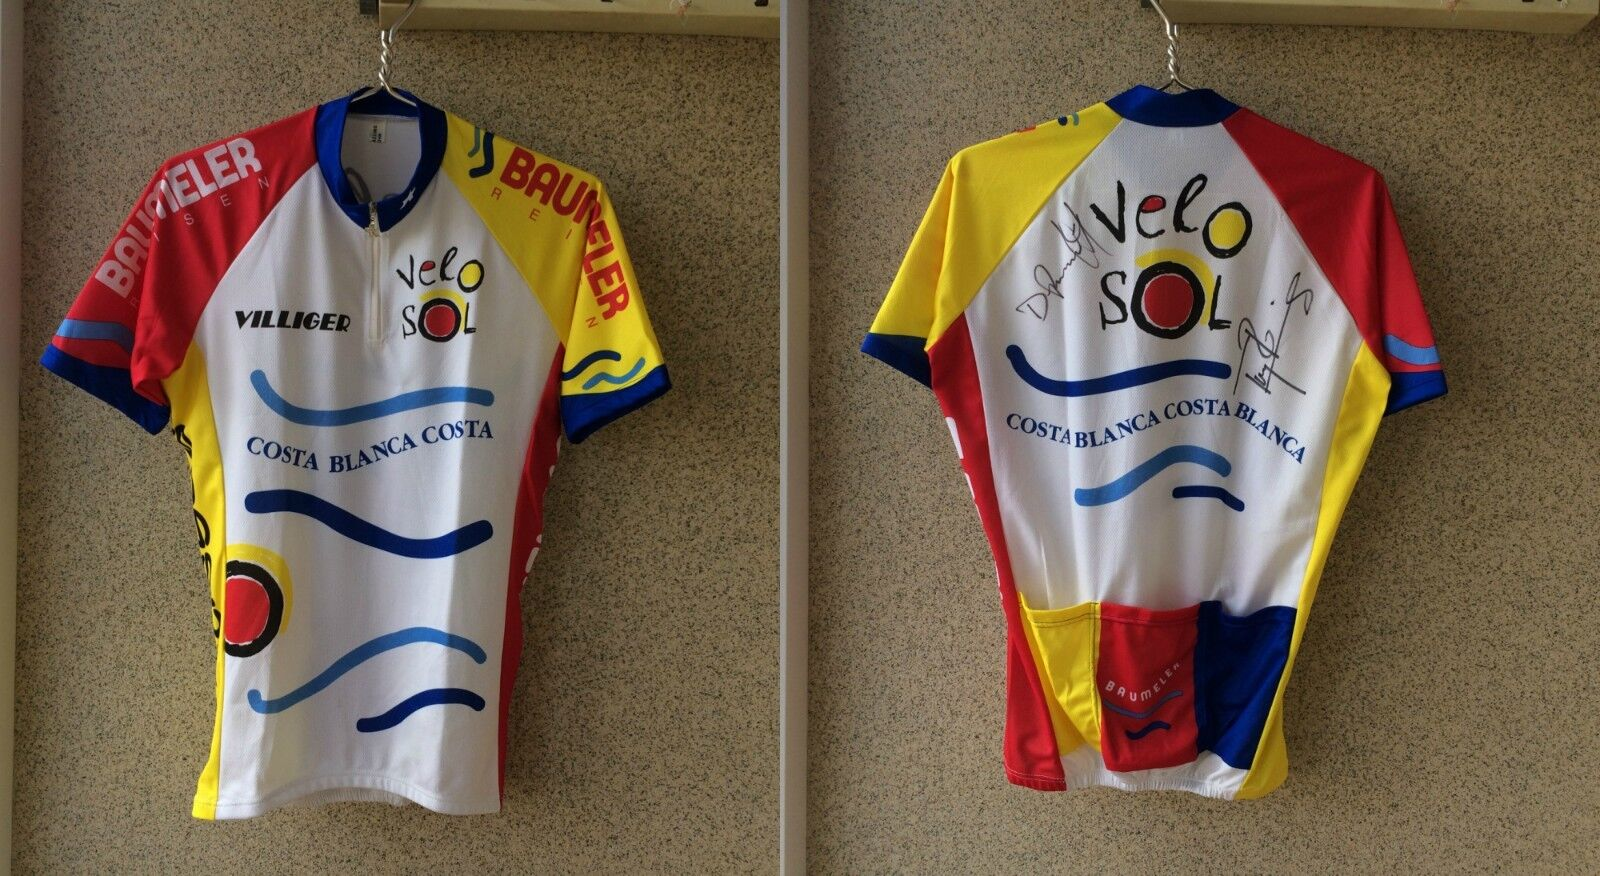 Baumeler Cycling shirt Costa whitea Jersey L camiseta  Velo Sol Signed OLD